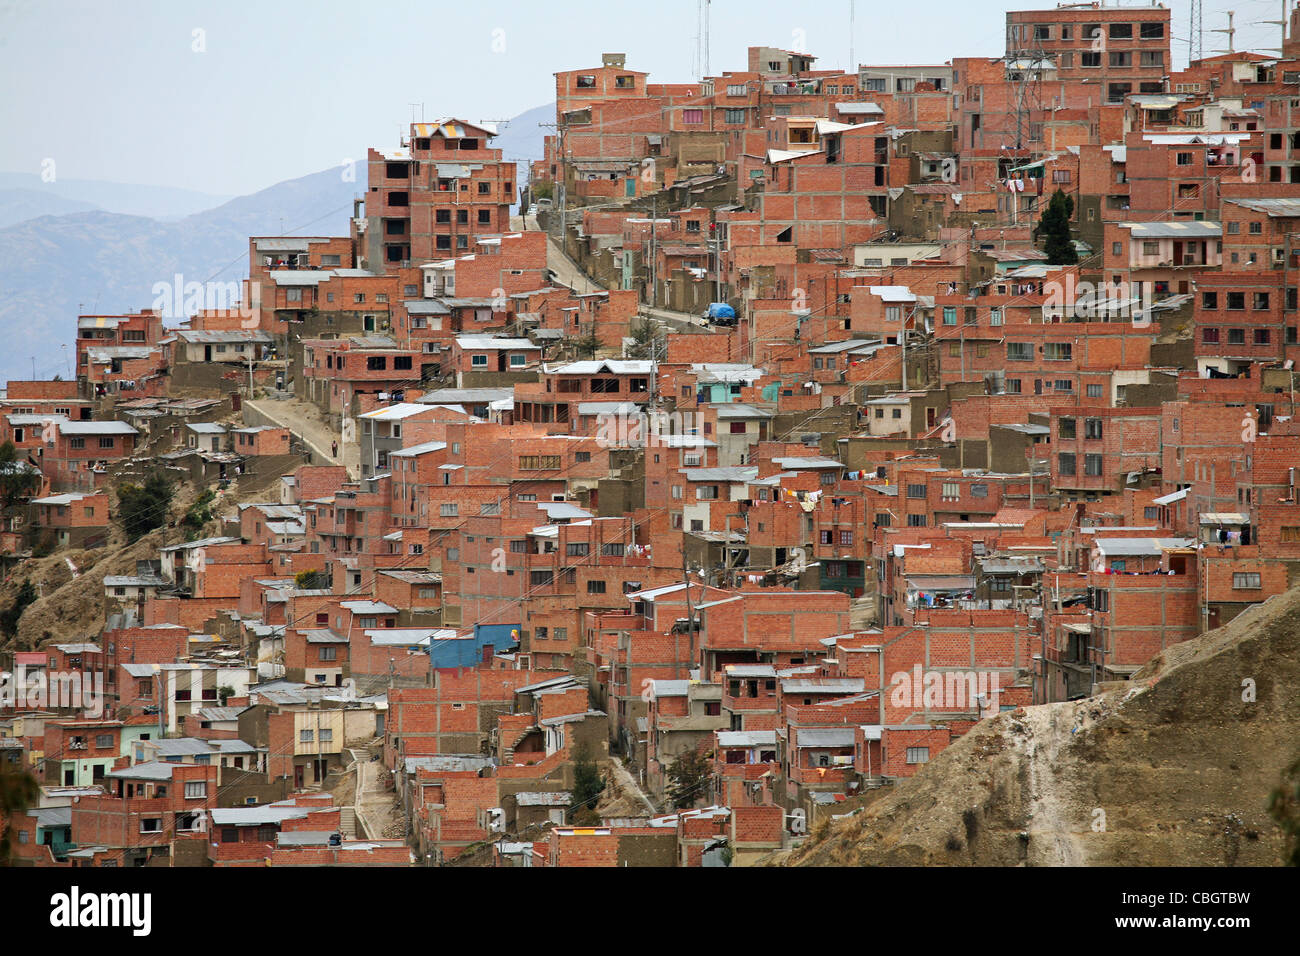 View over suburb of the city La Paz on hillside, Bolivia - Stock Image